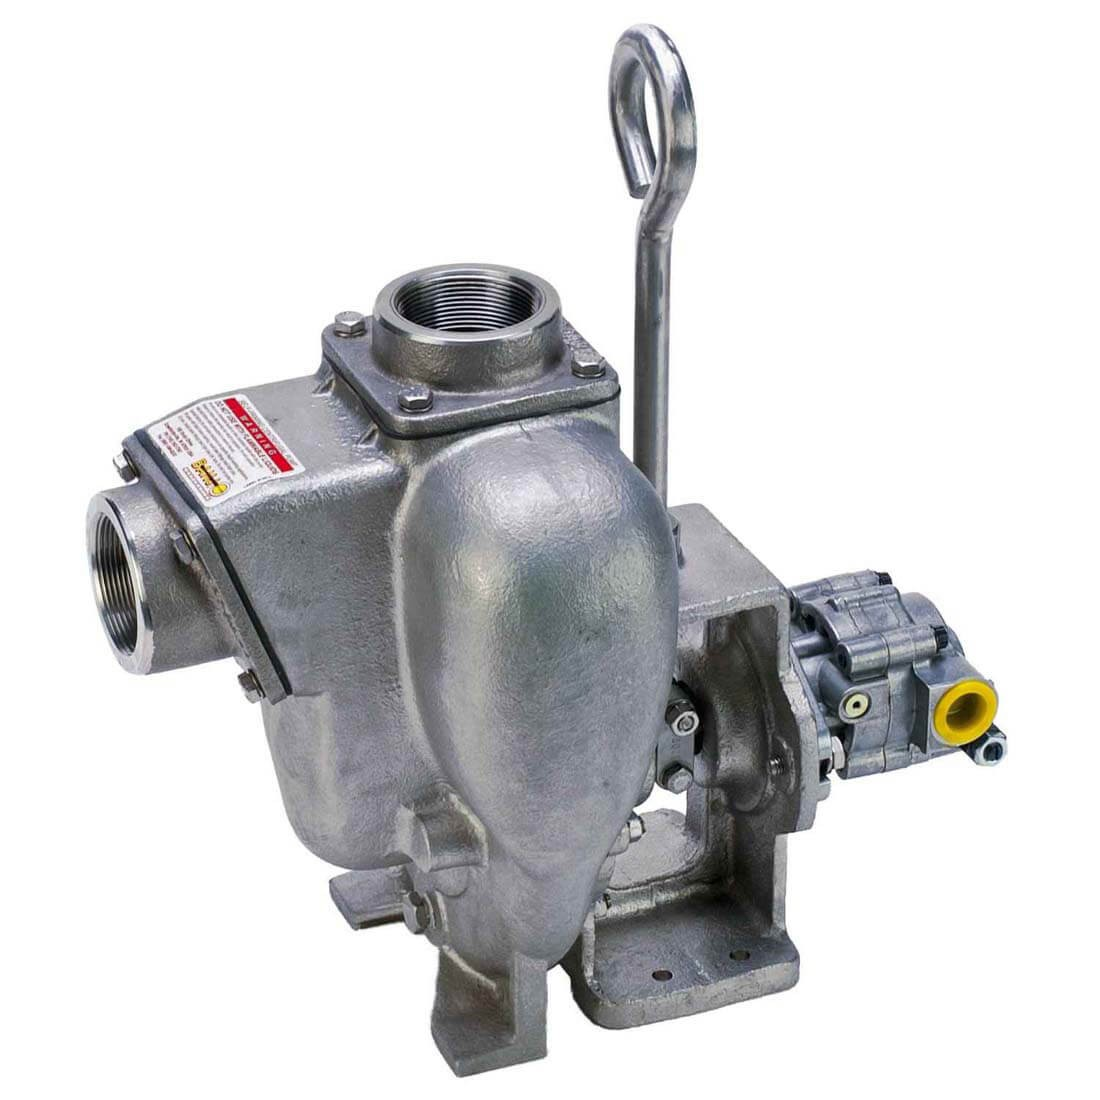 Image result for banjo stainless steel centrifugal pumps